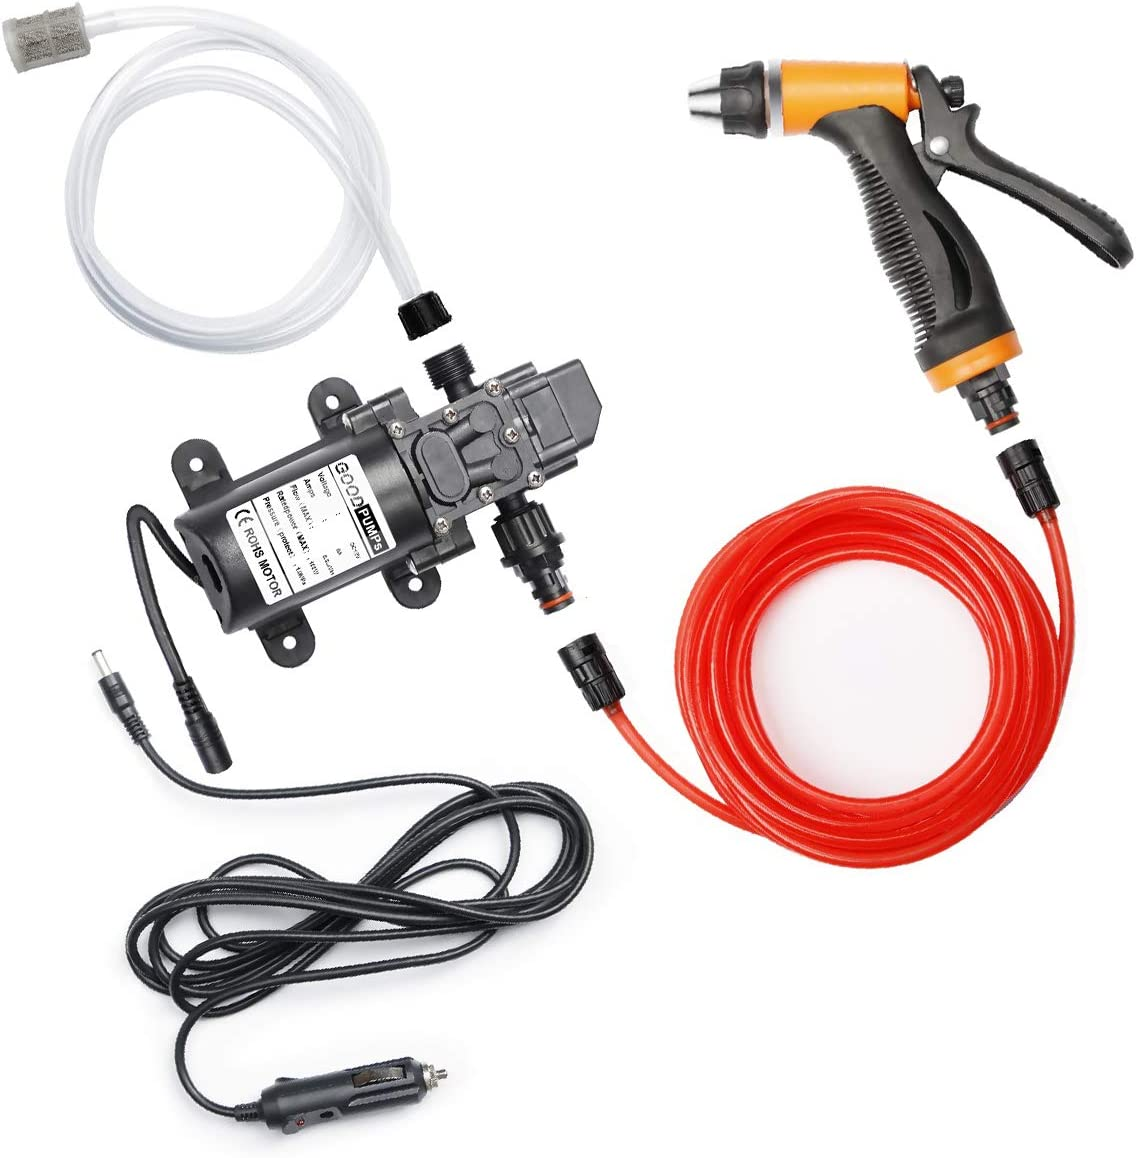 BANG4BUCK 12V Car Pressure Washer Today's only Kit 100W Portable High shop 160PSI